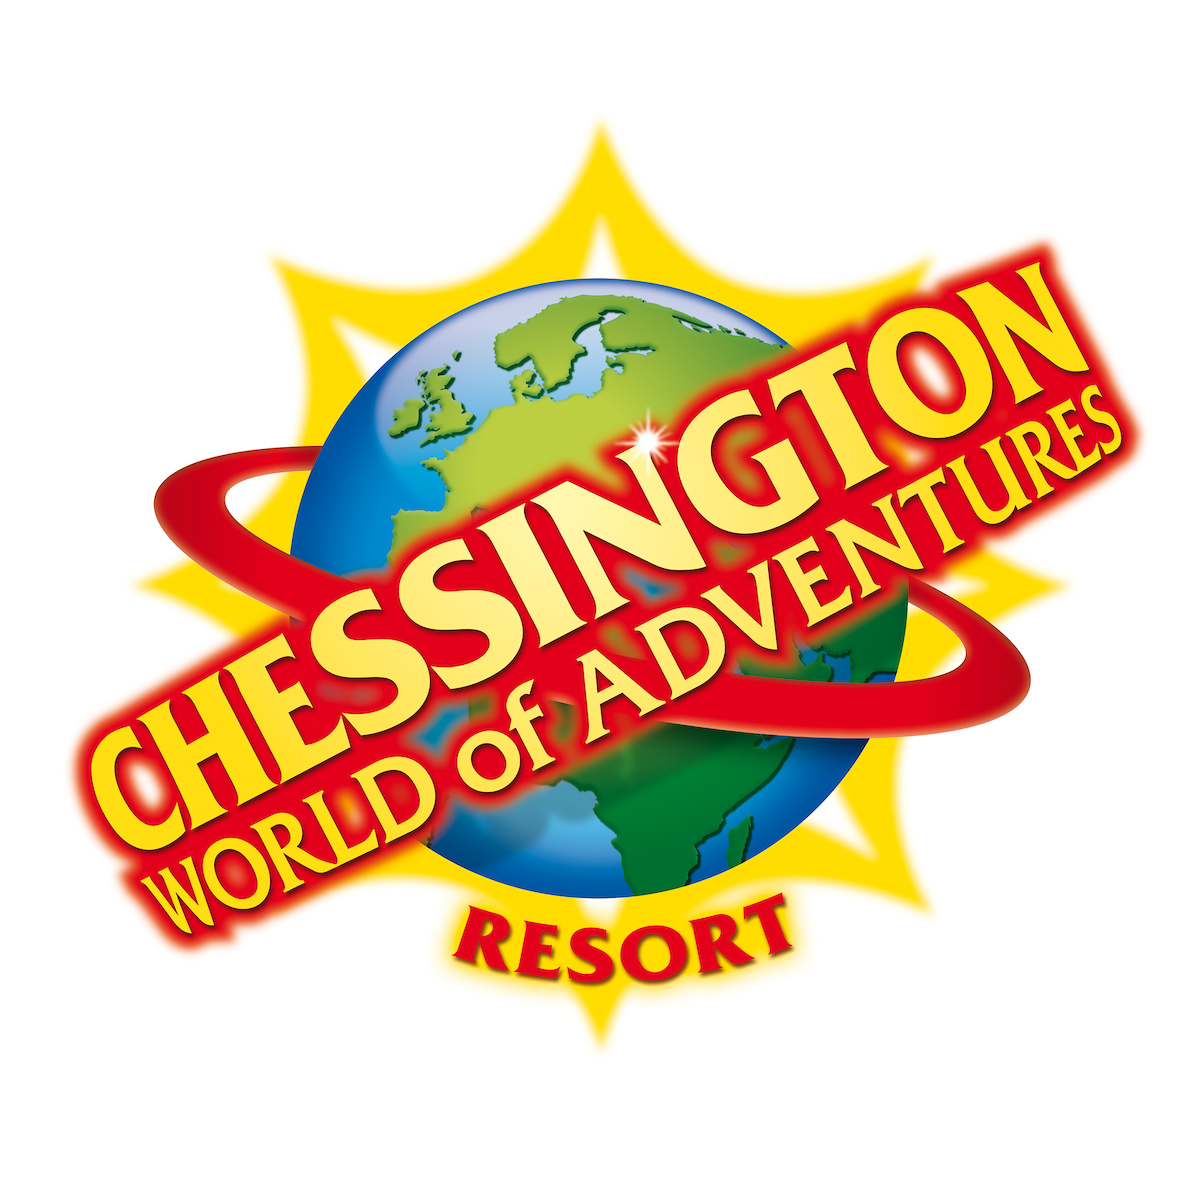 Chessington World of Adventure Resort